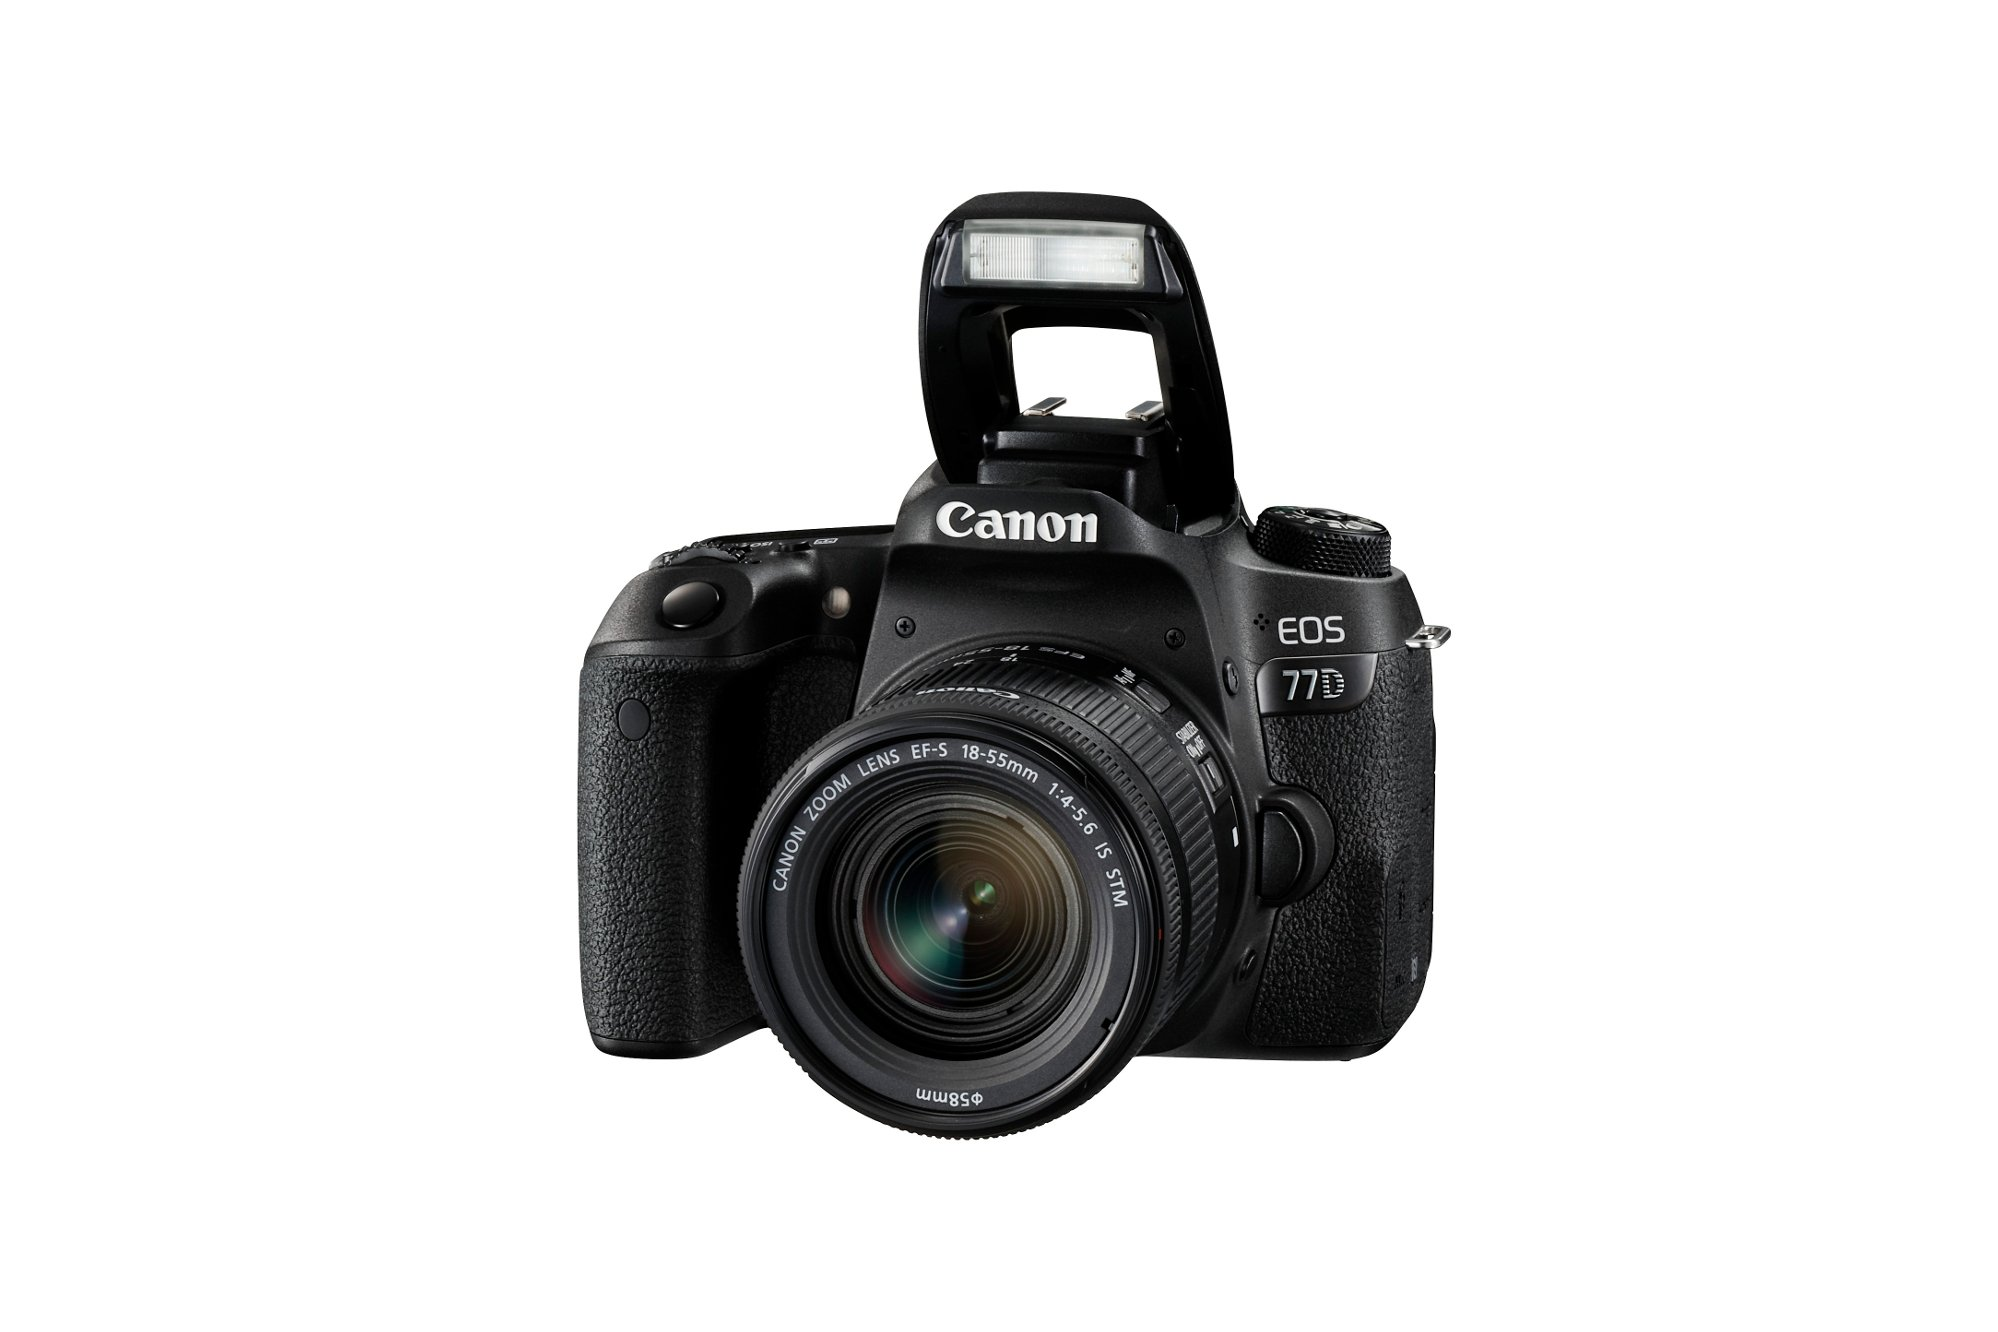 Canon EOS 77D EF-S 18-55mm SI STM Kit Instant Rebate